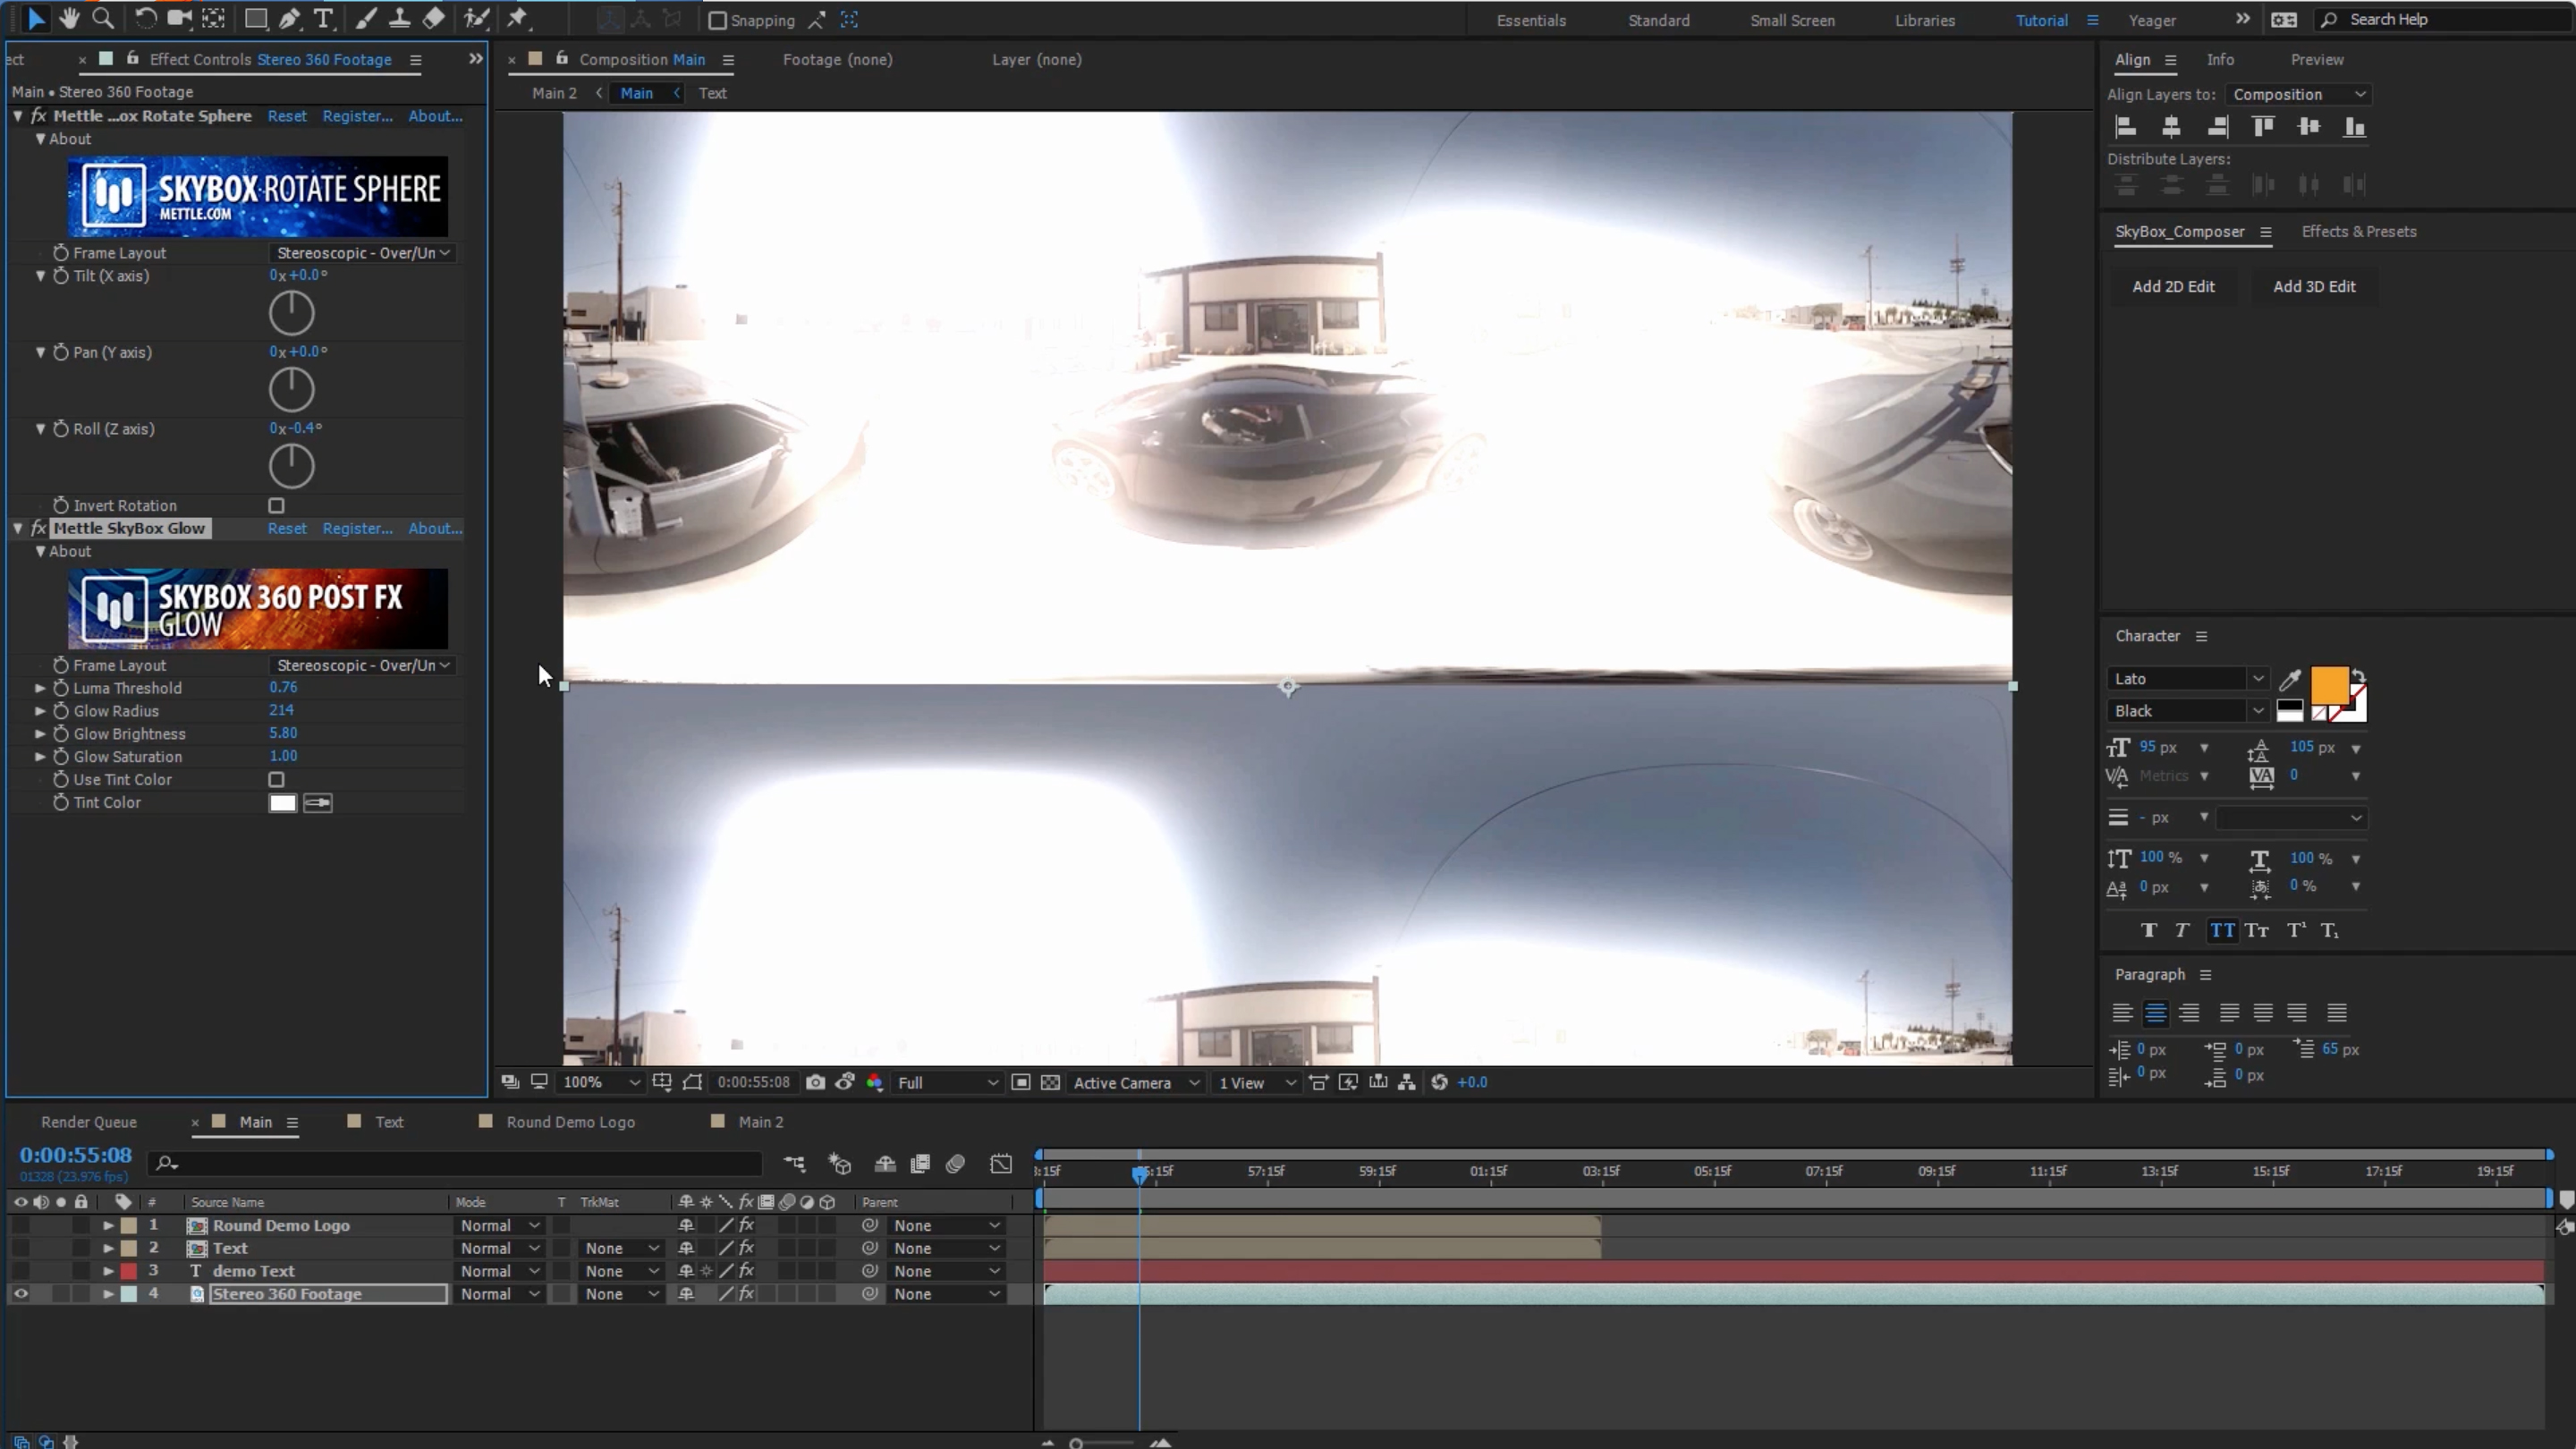 Stereo support SkyBox Studio V2 and Post FX Glow